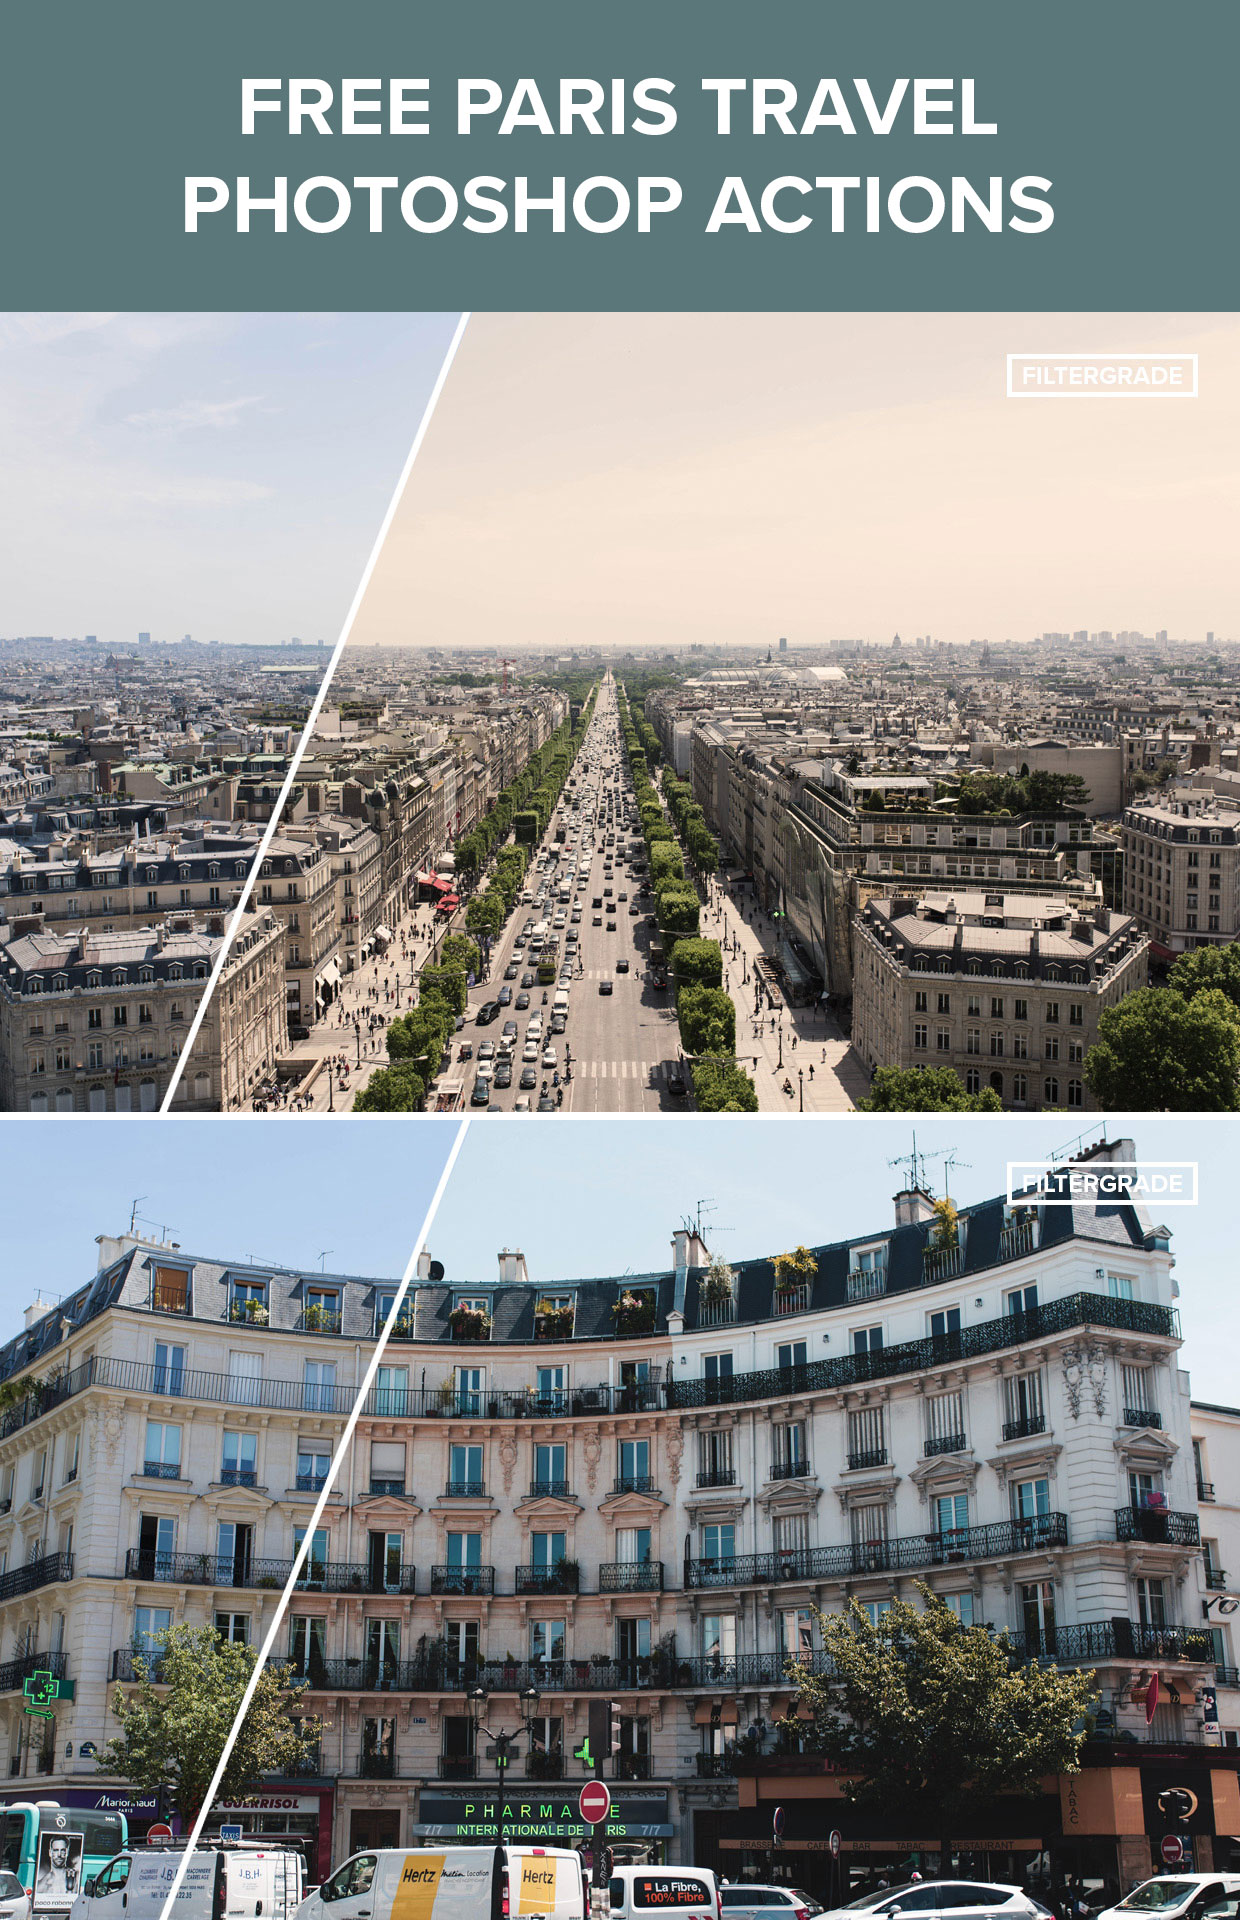 Free Travel Photoshop Actions on FilterGrade